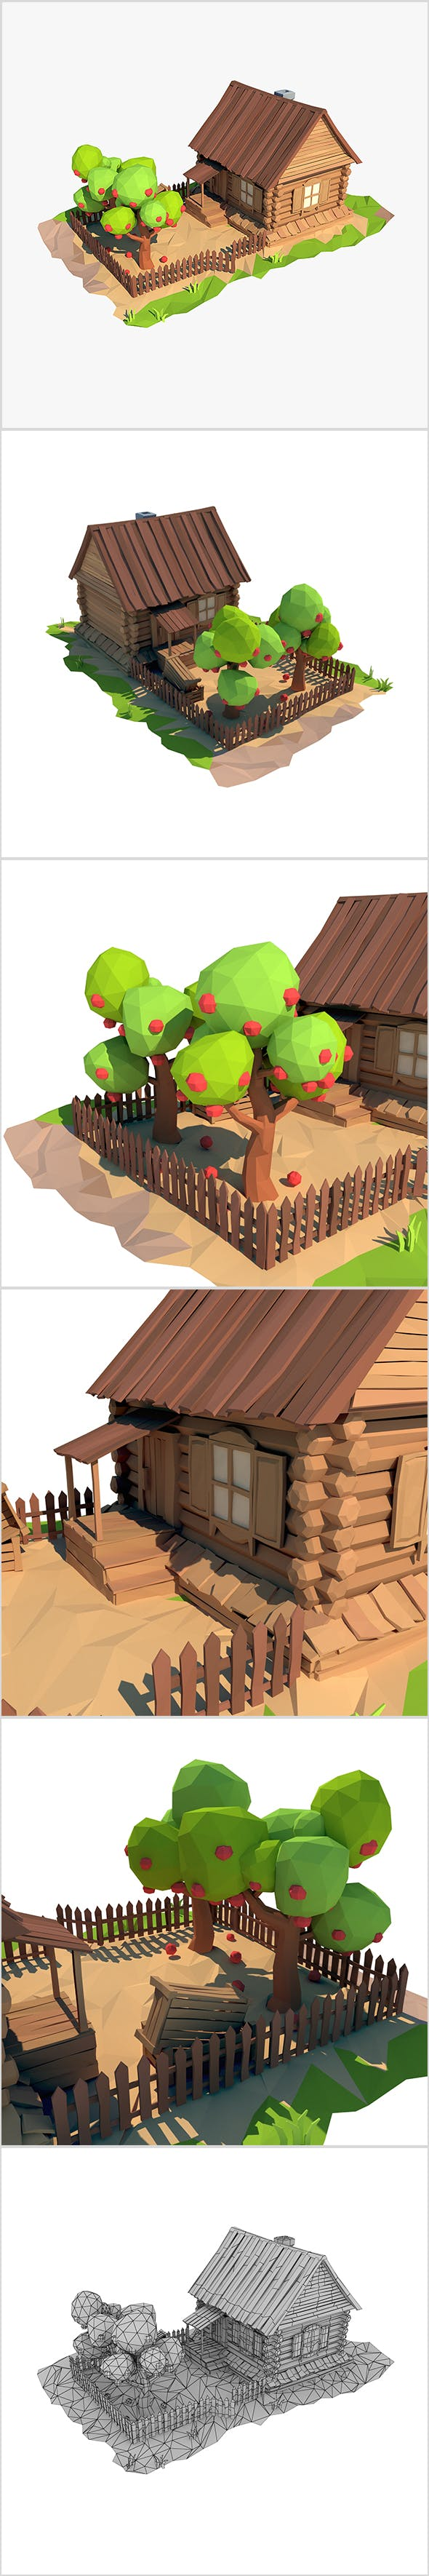 Cartoon wooden house - 3DOcean Item for Sale